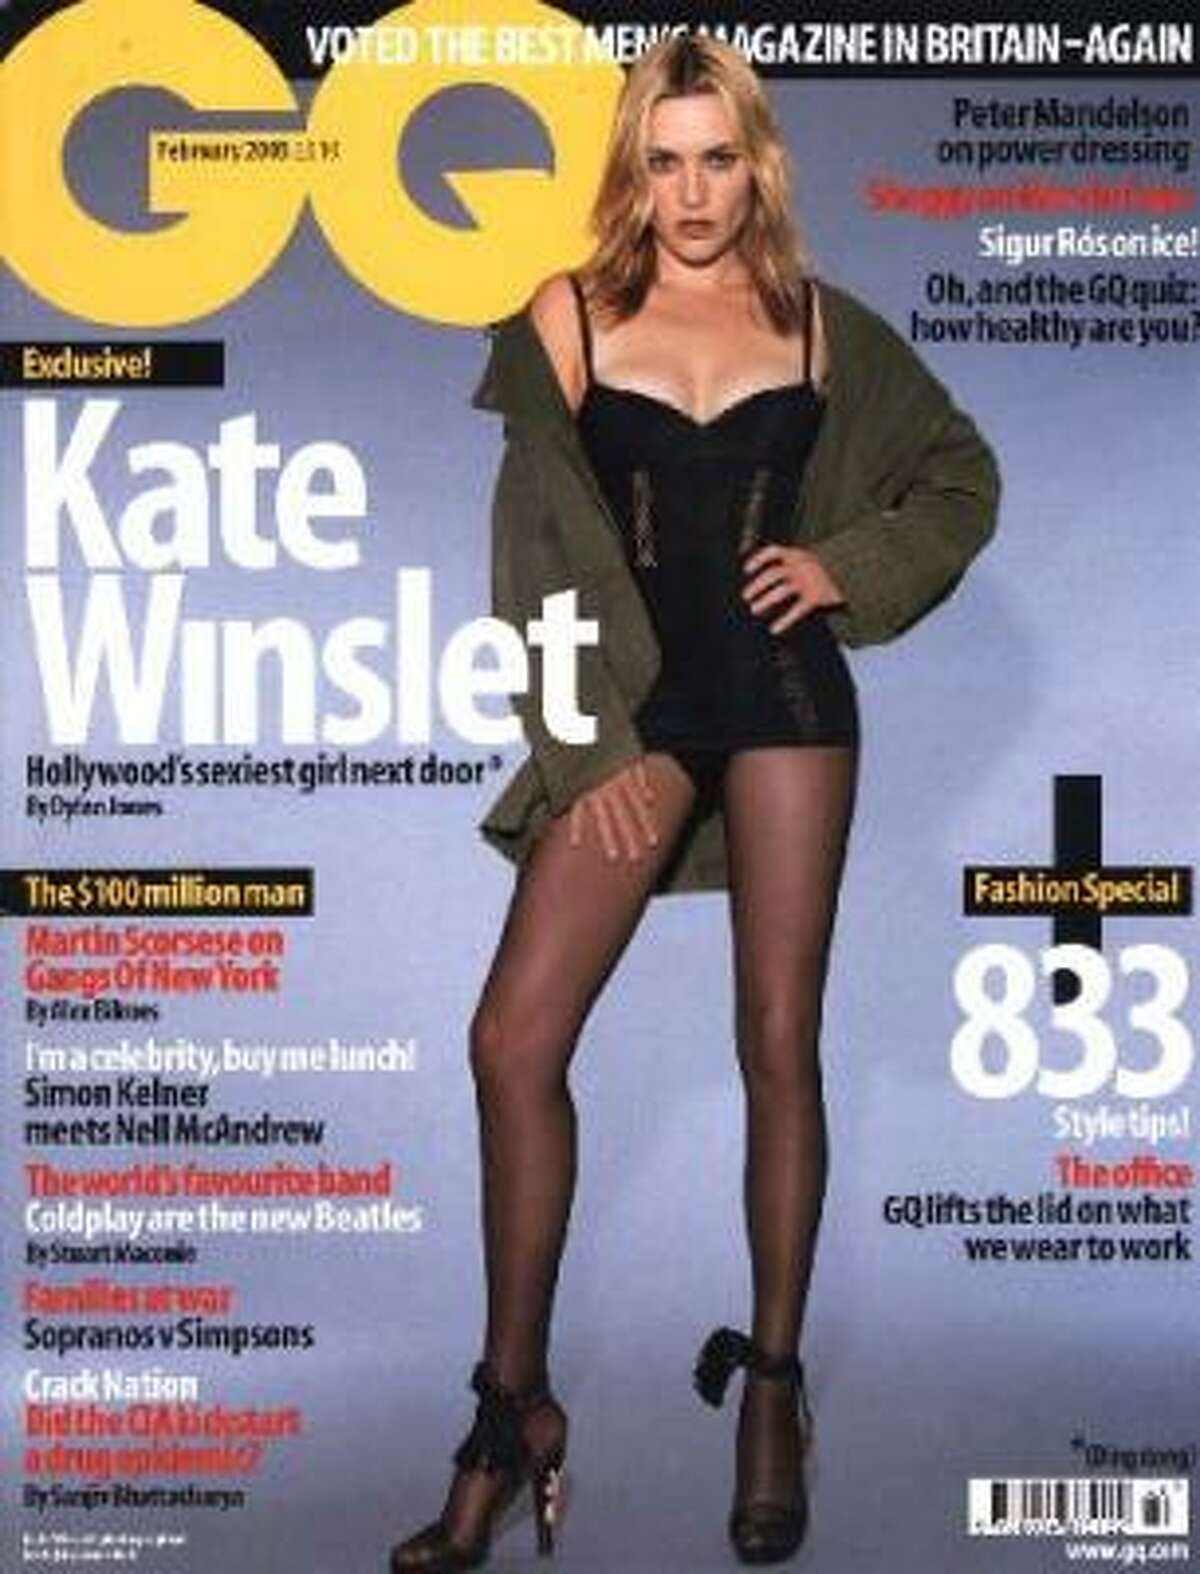 Oscar winner Kate Winslet has always been outspoken about her weight. An airbrushed GQ cover photo left the actress steaming, as she was quoted in the accompanying interview questioning sex appeal and weight.